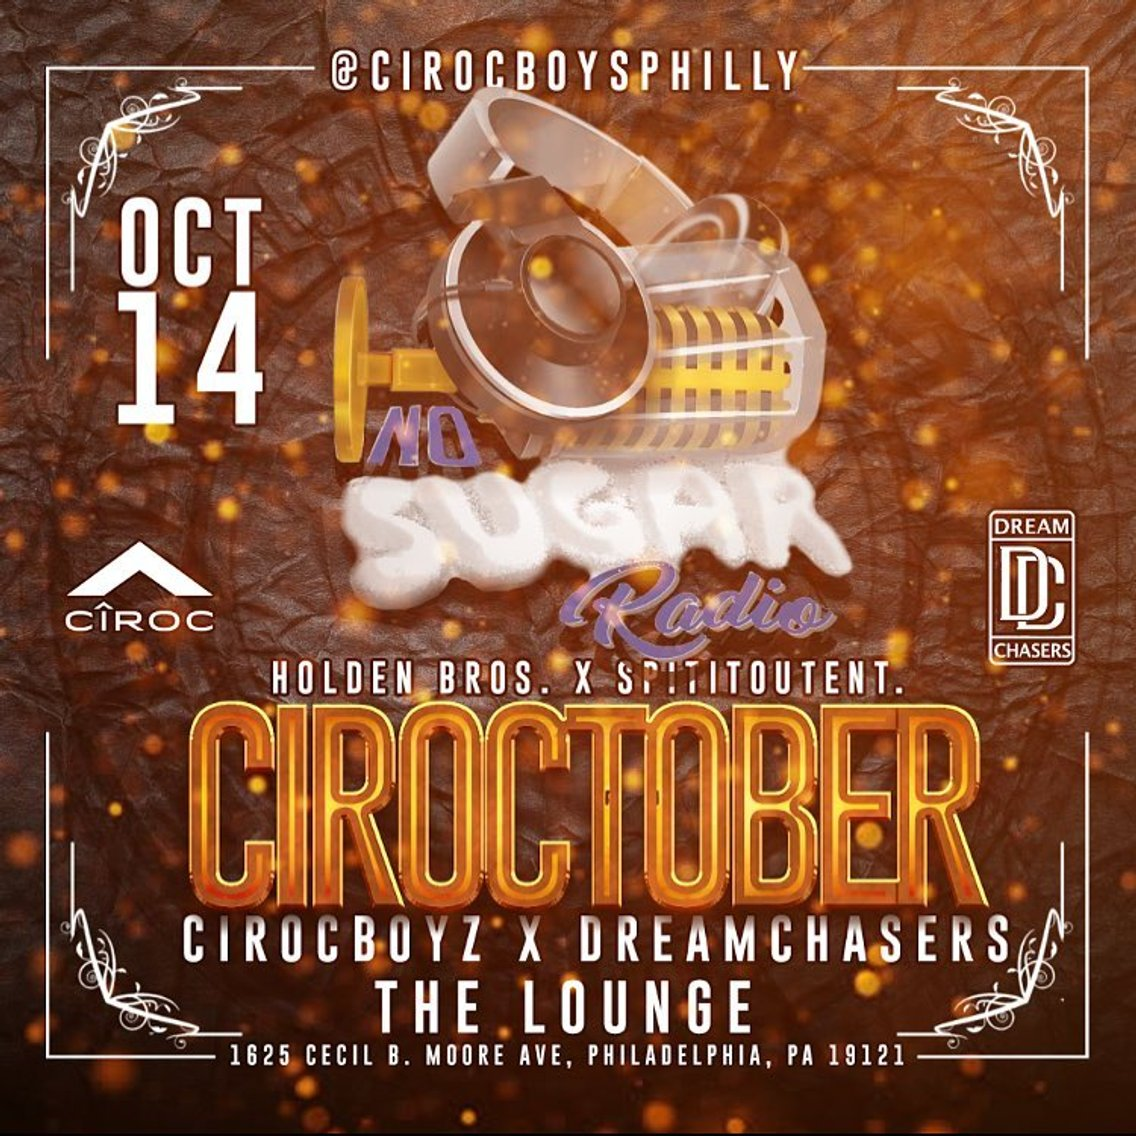 CIROCTOBER by CIROCBOYSPHILLY - Cover Image